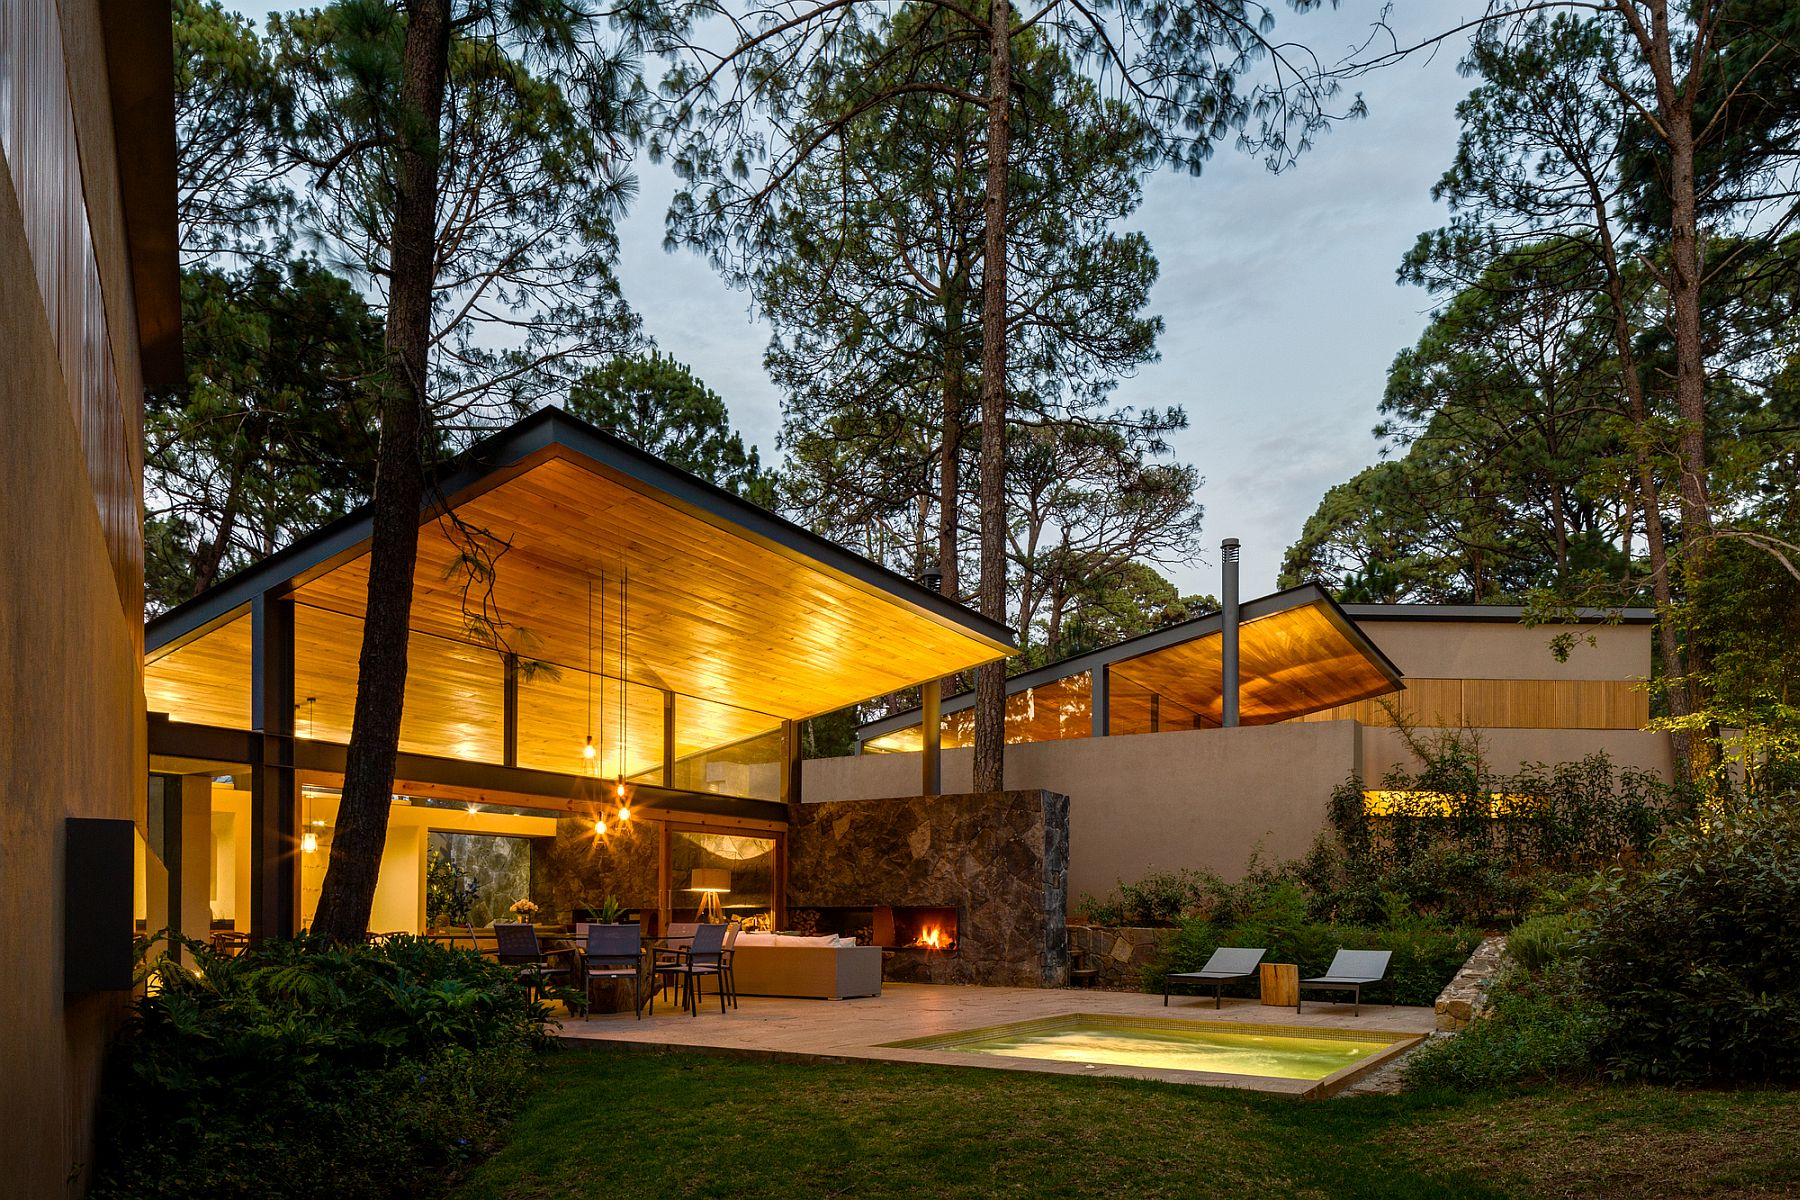 Warm wooden ceiling gives the house an inviting, yet modern appeal